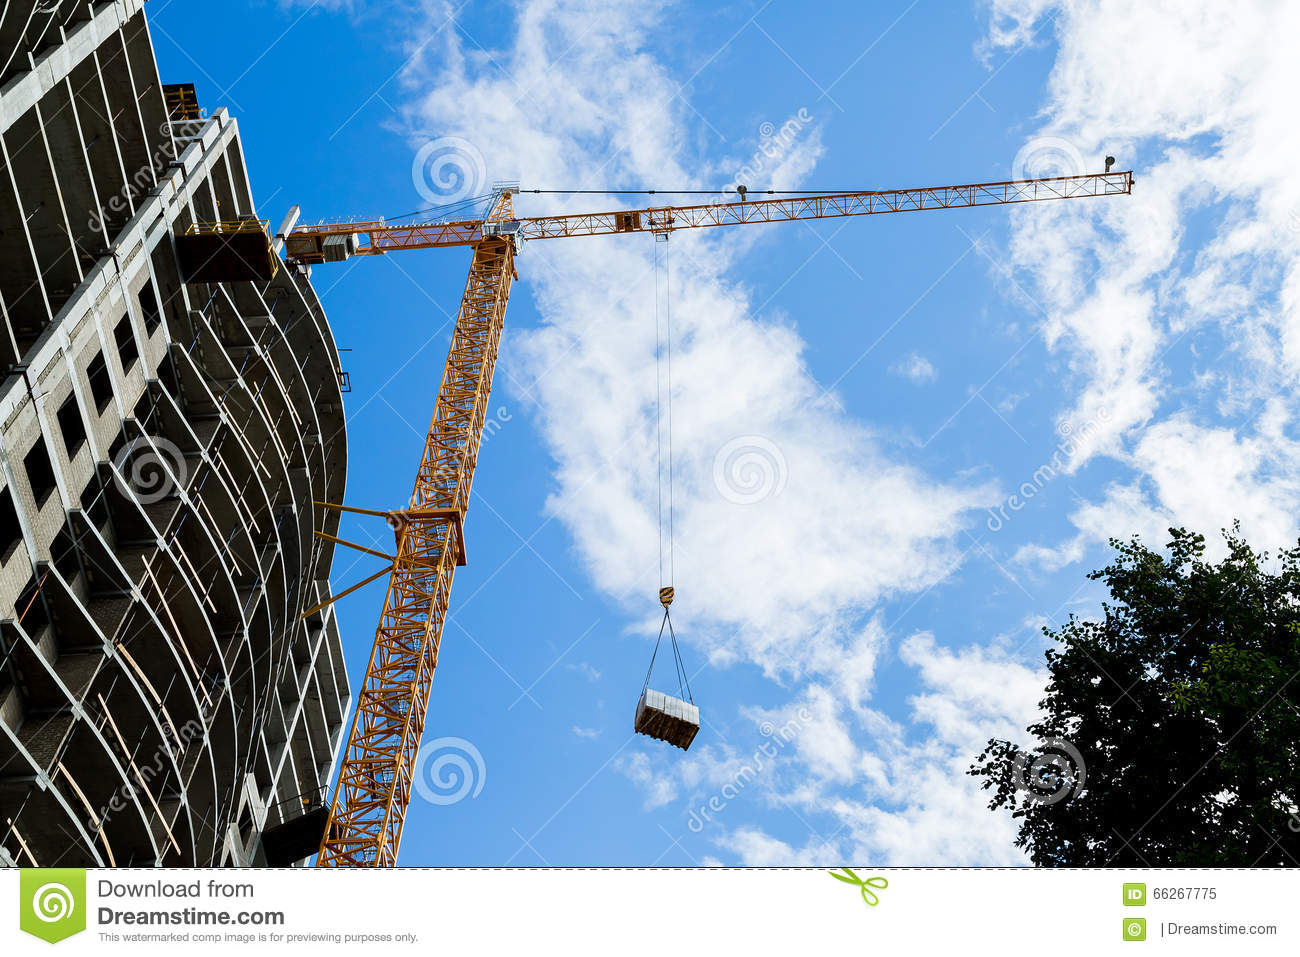 Liebherr tower crane stock image  Image of site, factory